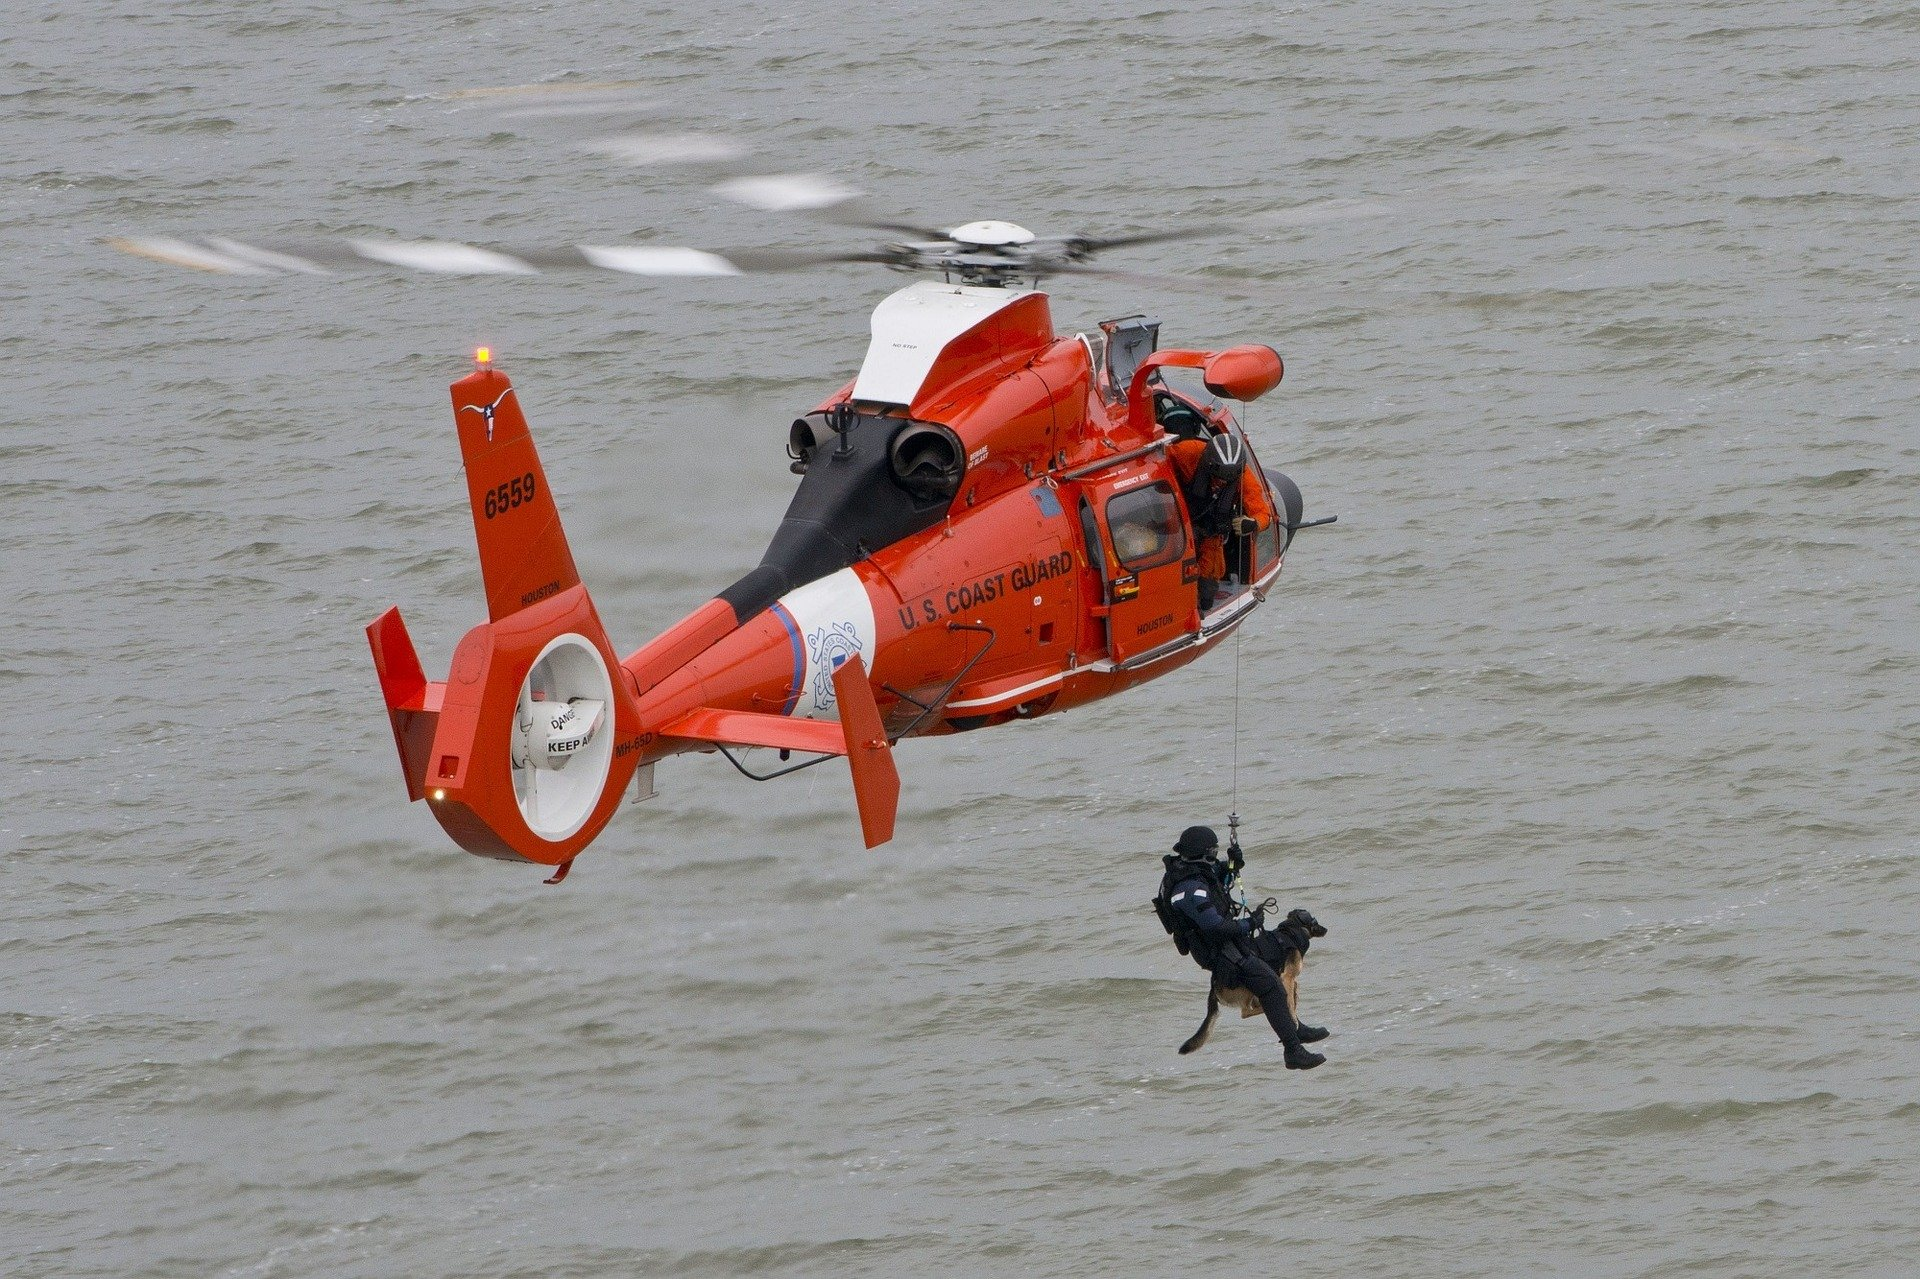 coast-guard-training-888008_1920